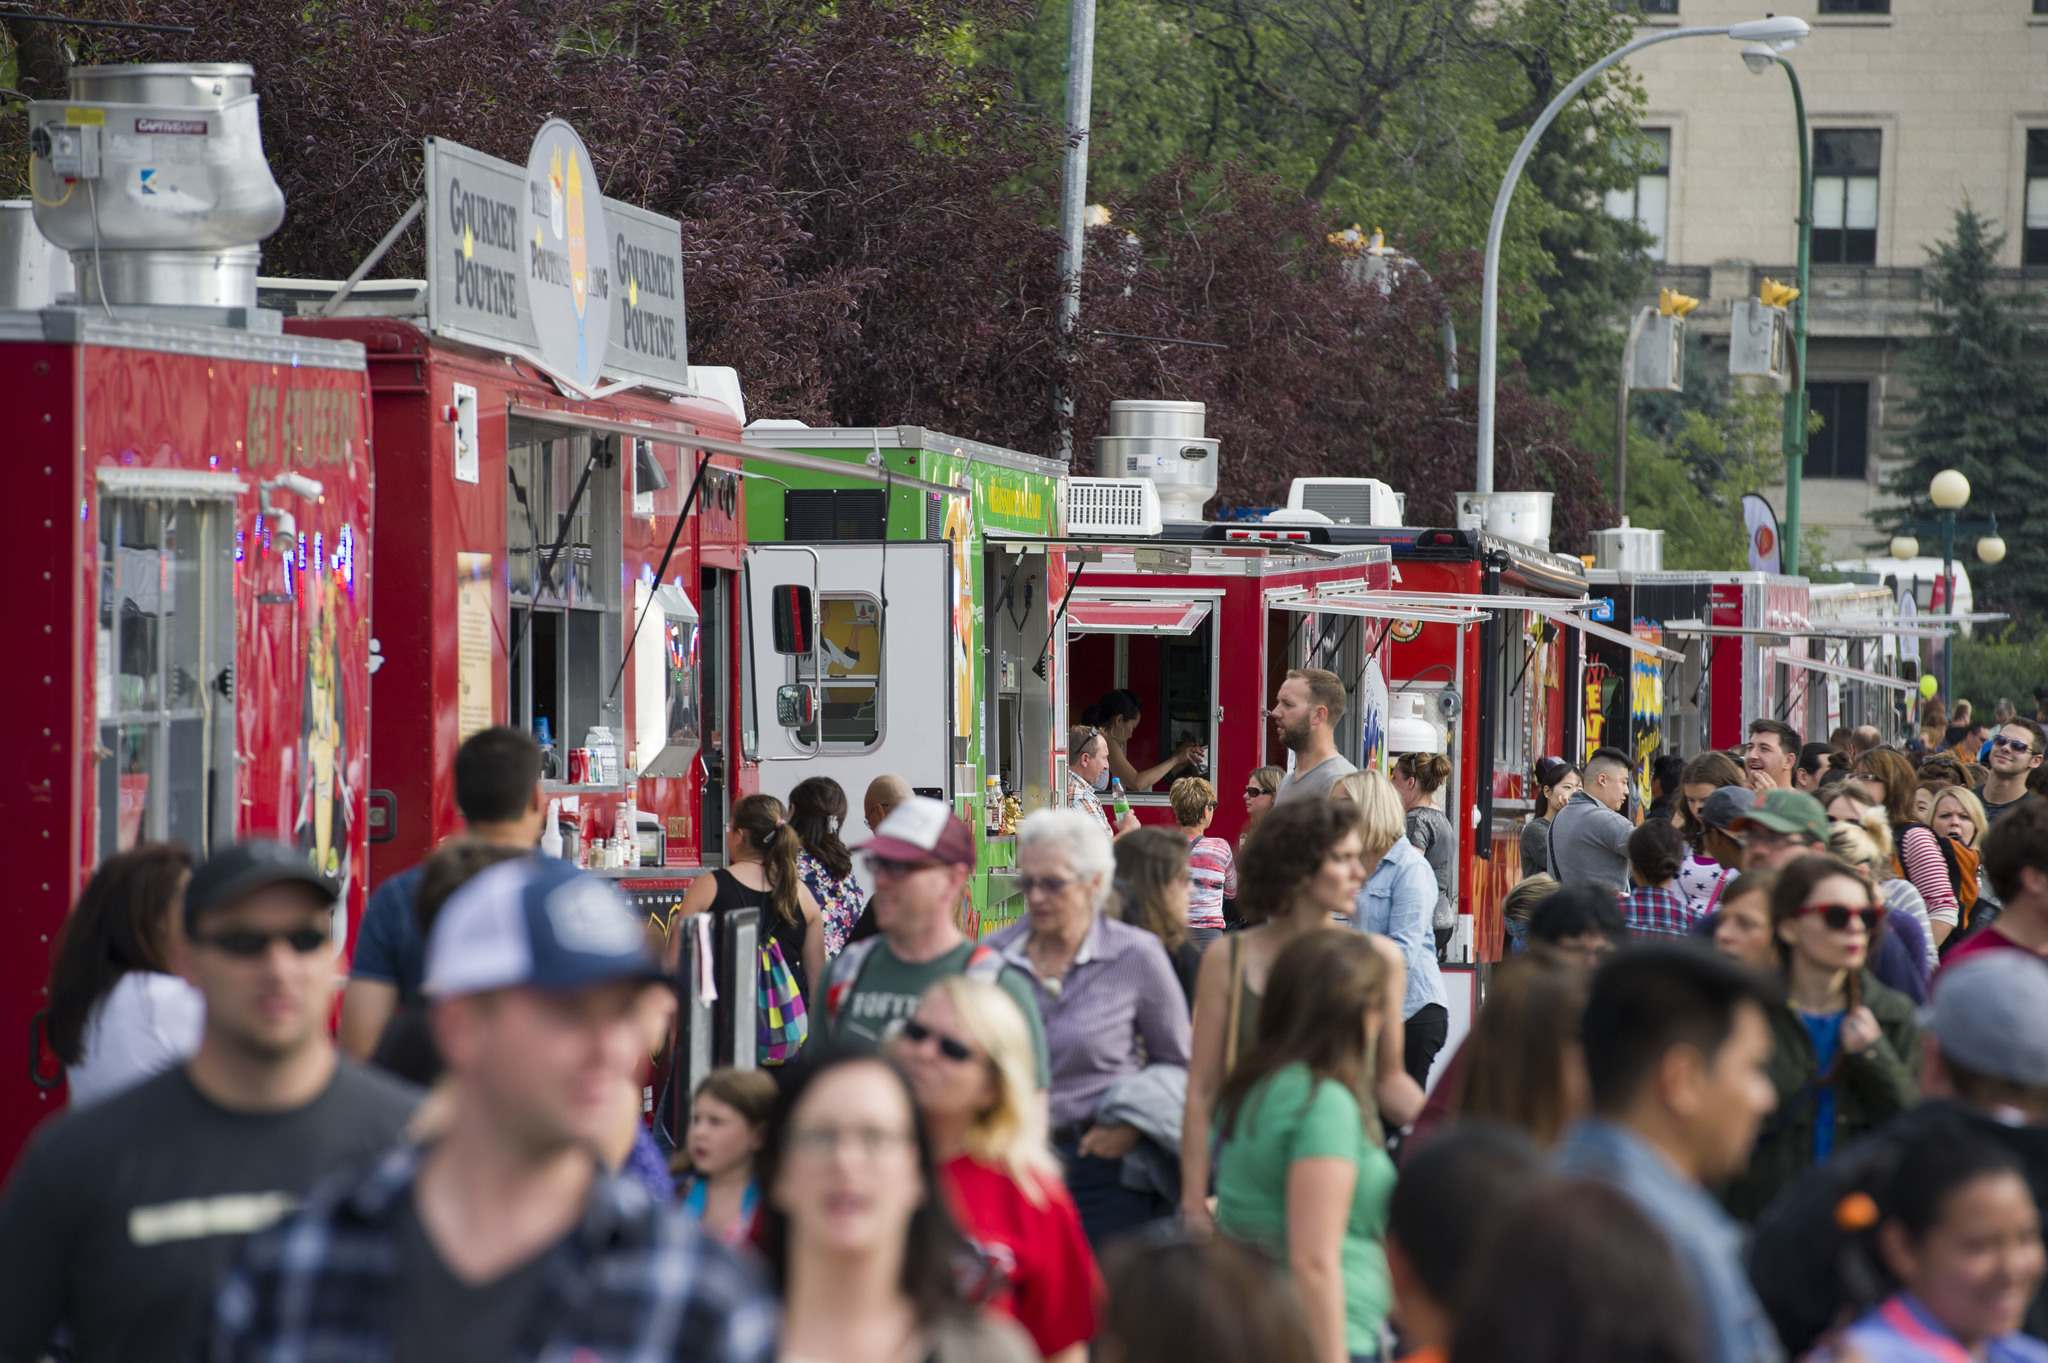 DAVID LIPNOWSKI / WINNIPEG FREE PRESS FILES</p><p>Food trucks will be subject to expanded fire inspections and fees.</p>